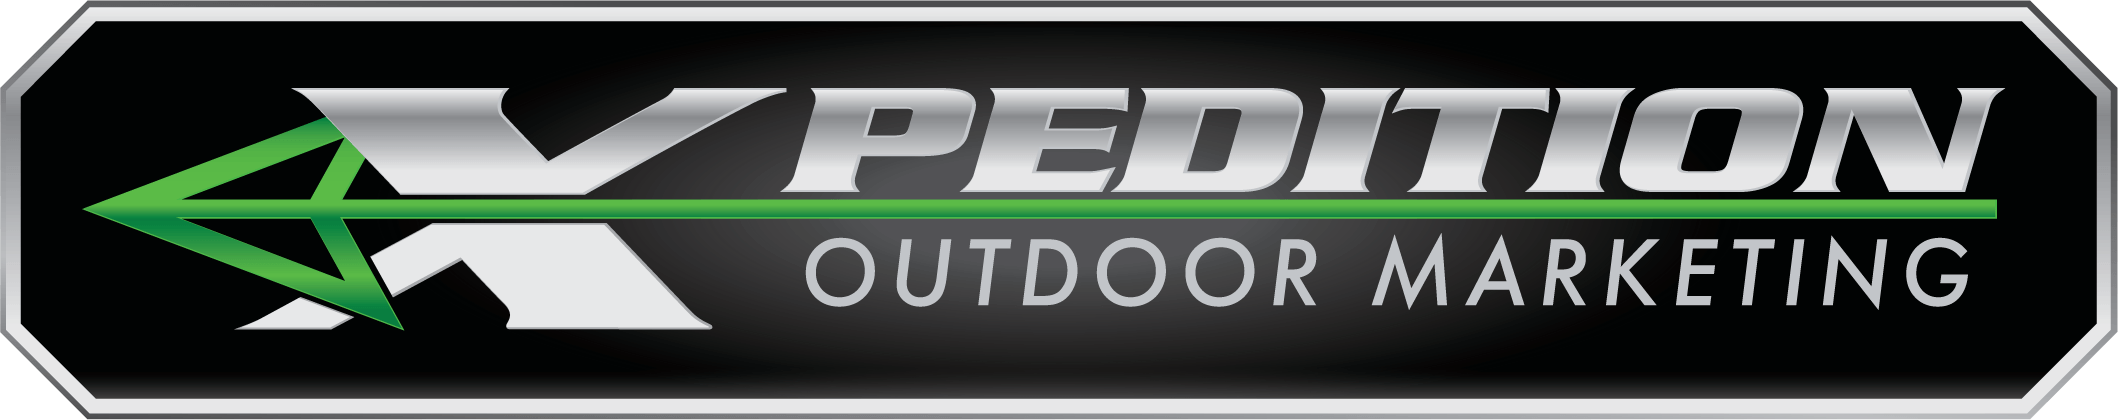 Xpedition Outdoor Marketing logo